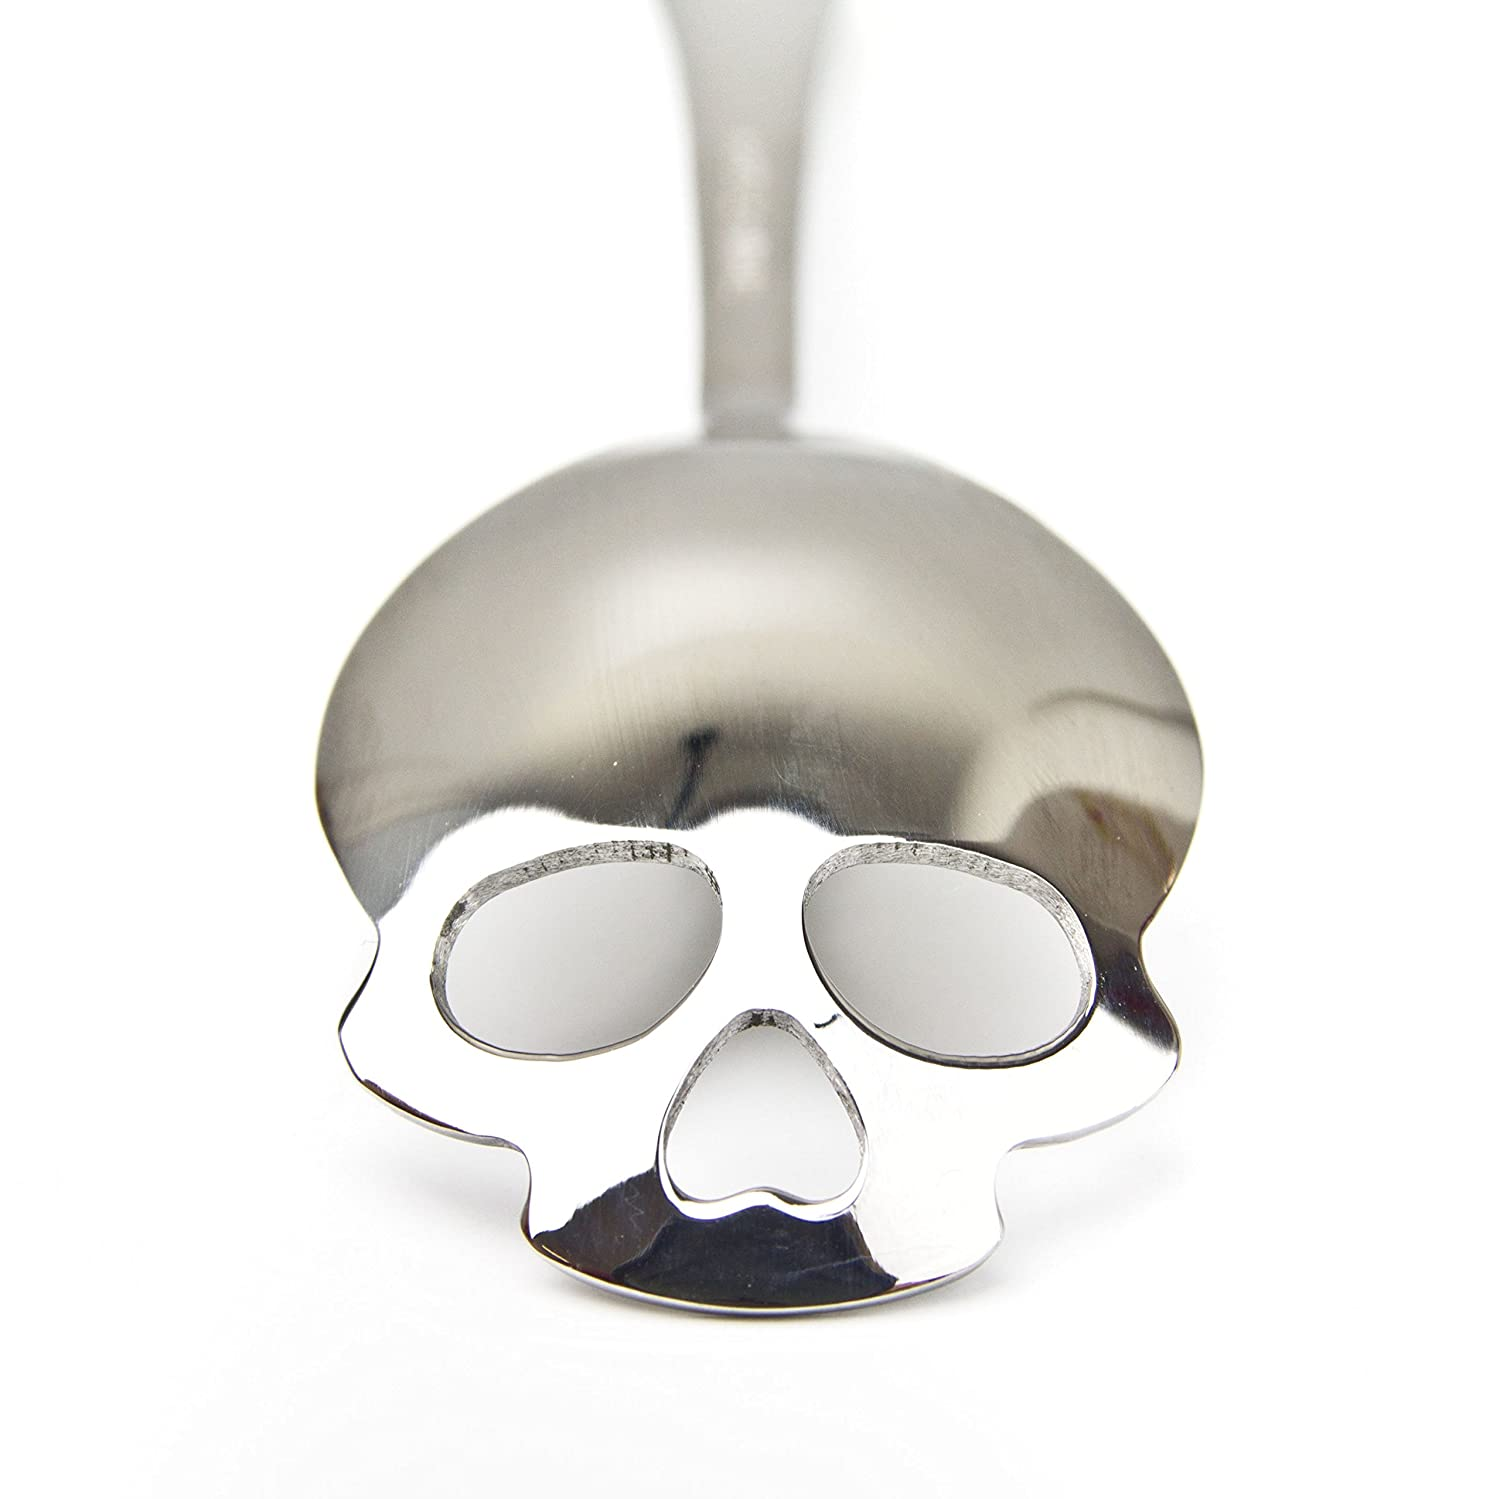 SUCK UK Original and Official Sugar Skull Spoon